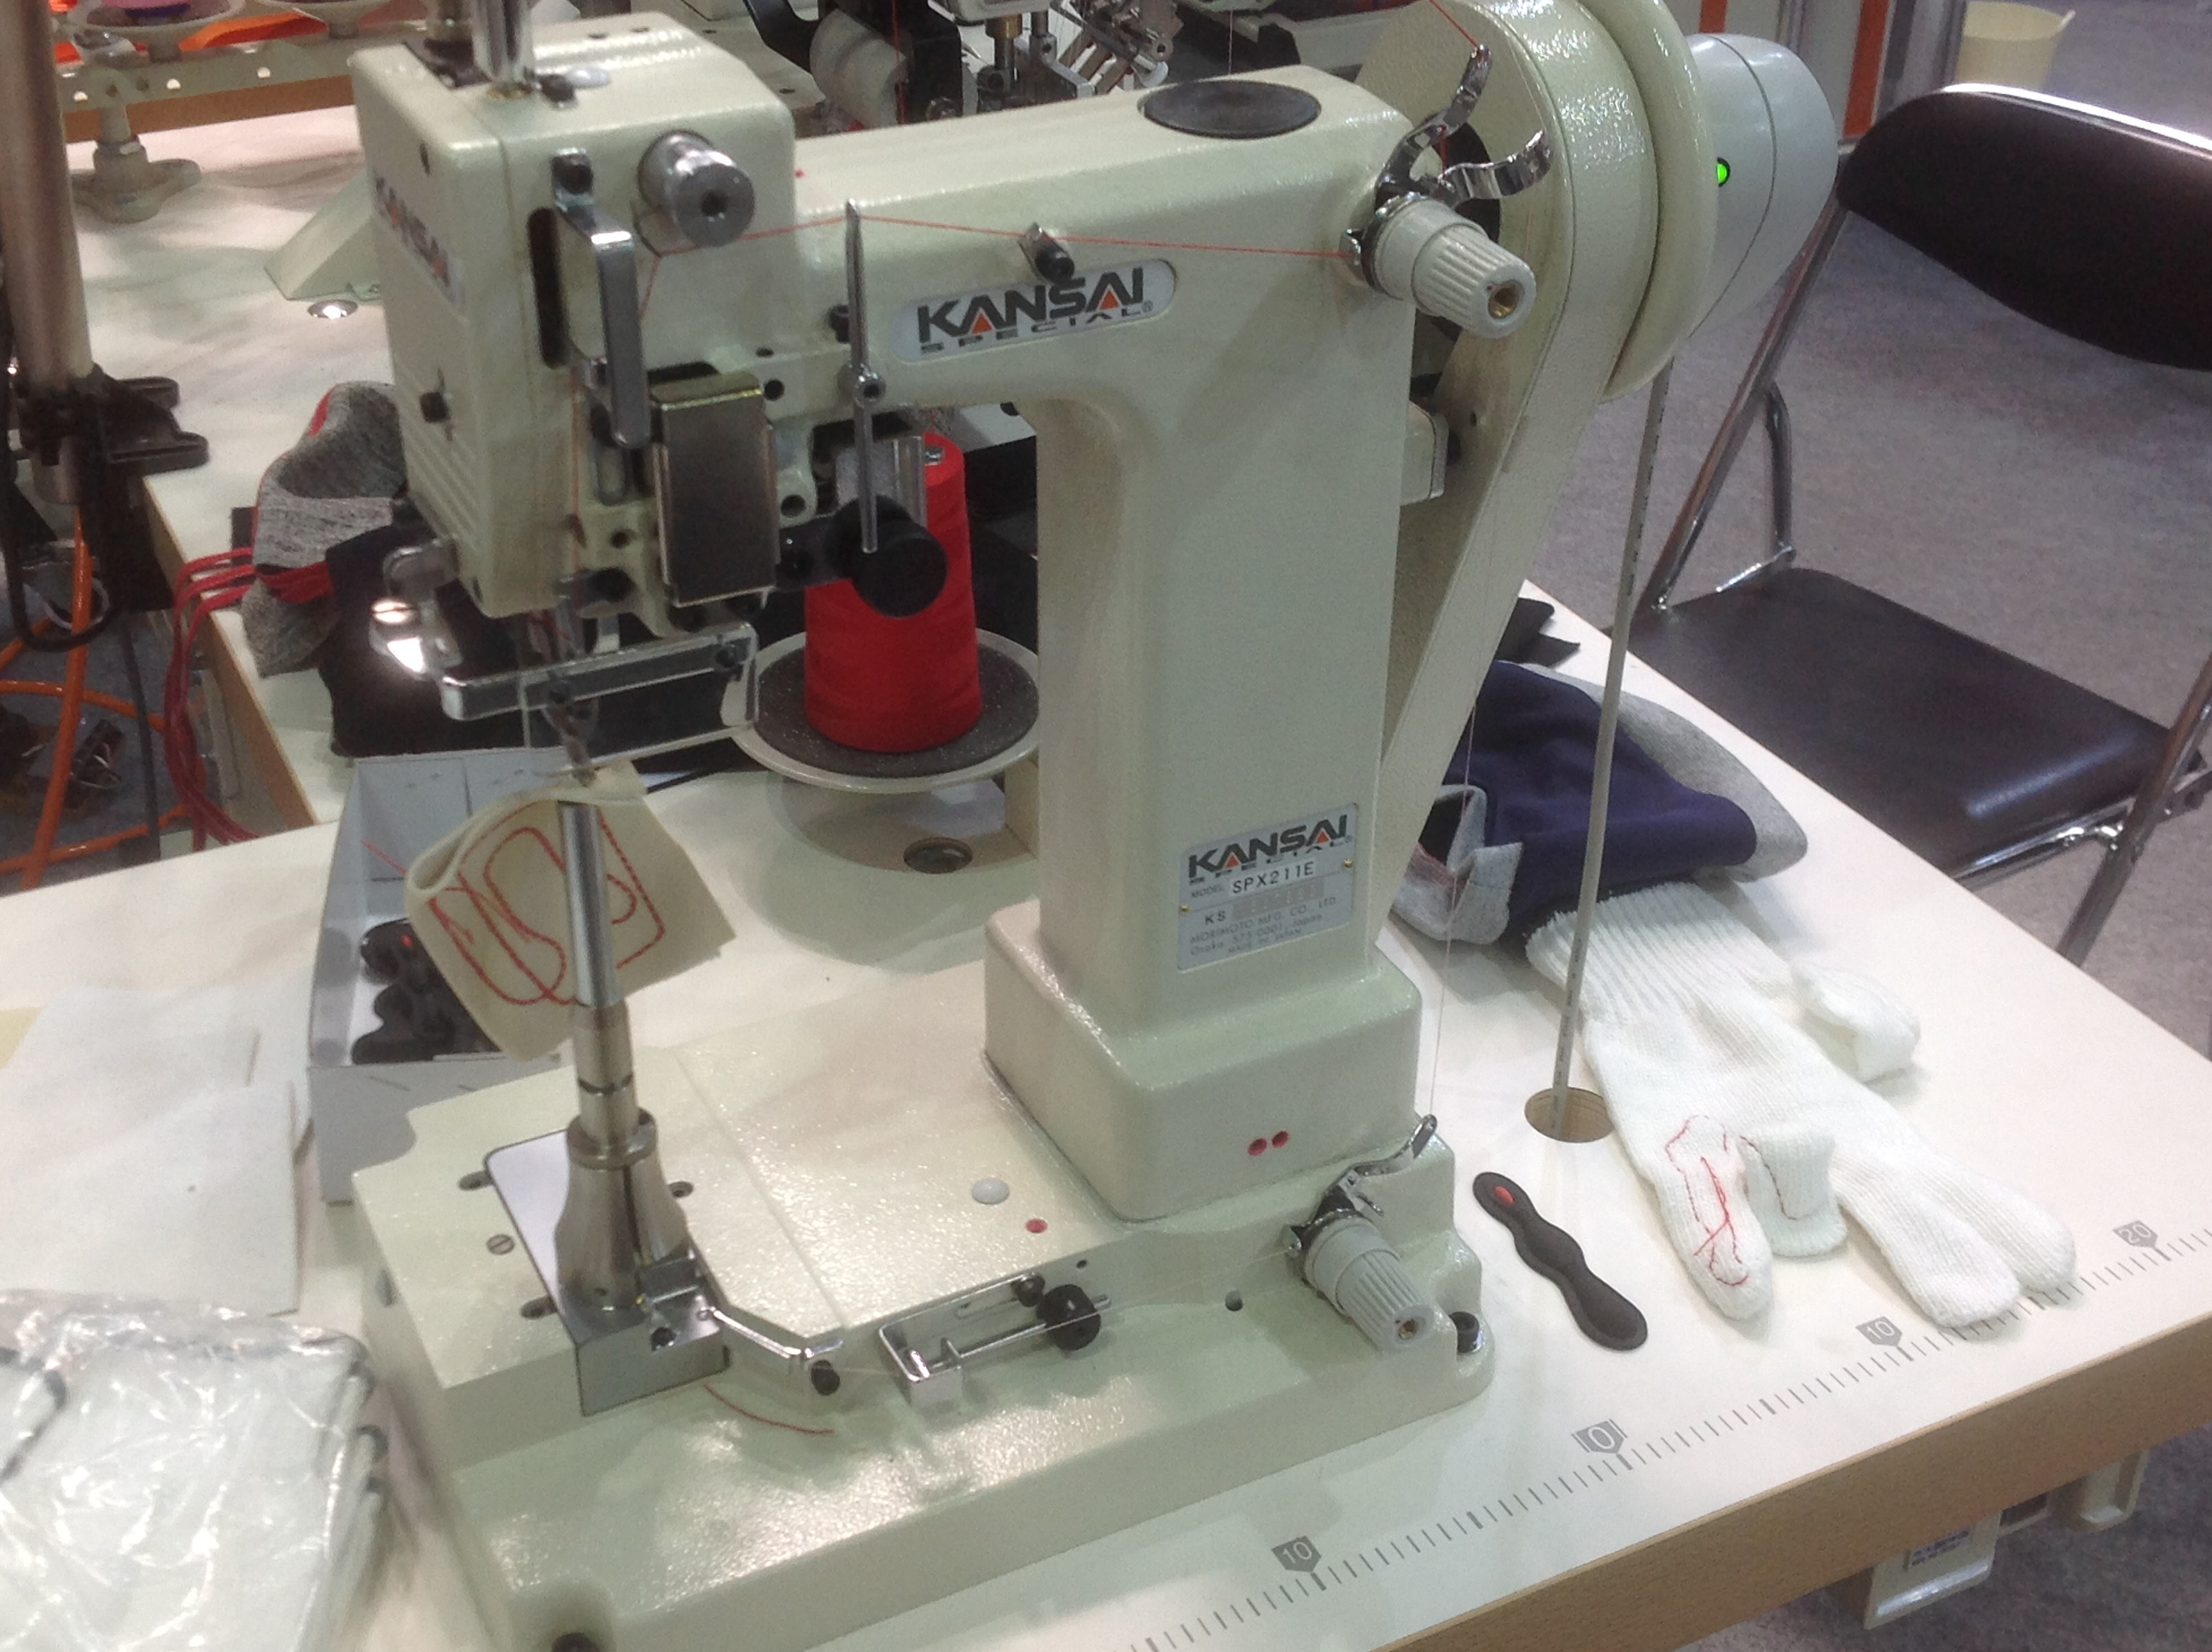 Kansai Special SPX small post bed machine